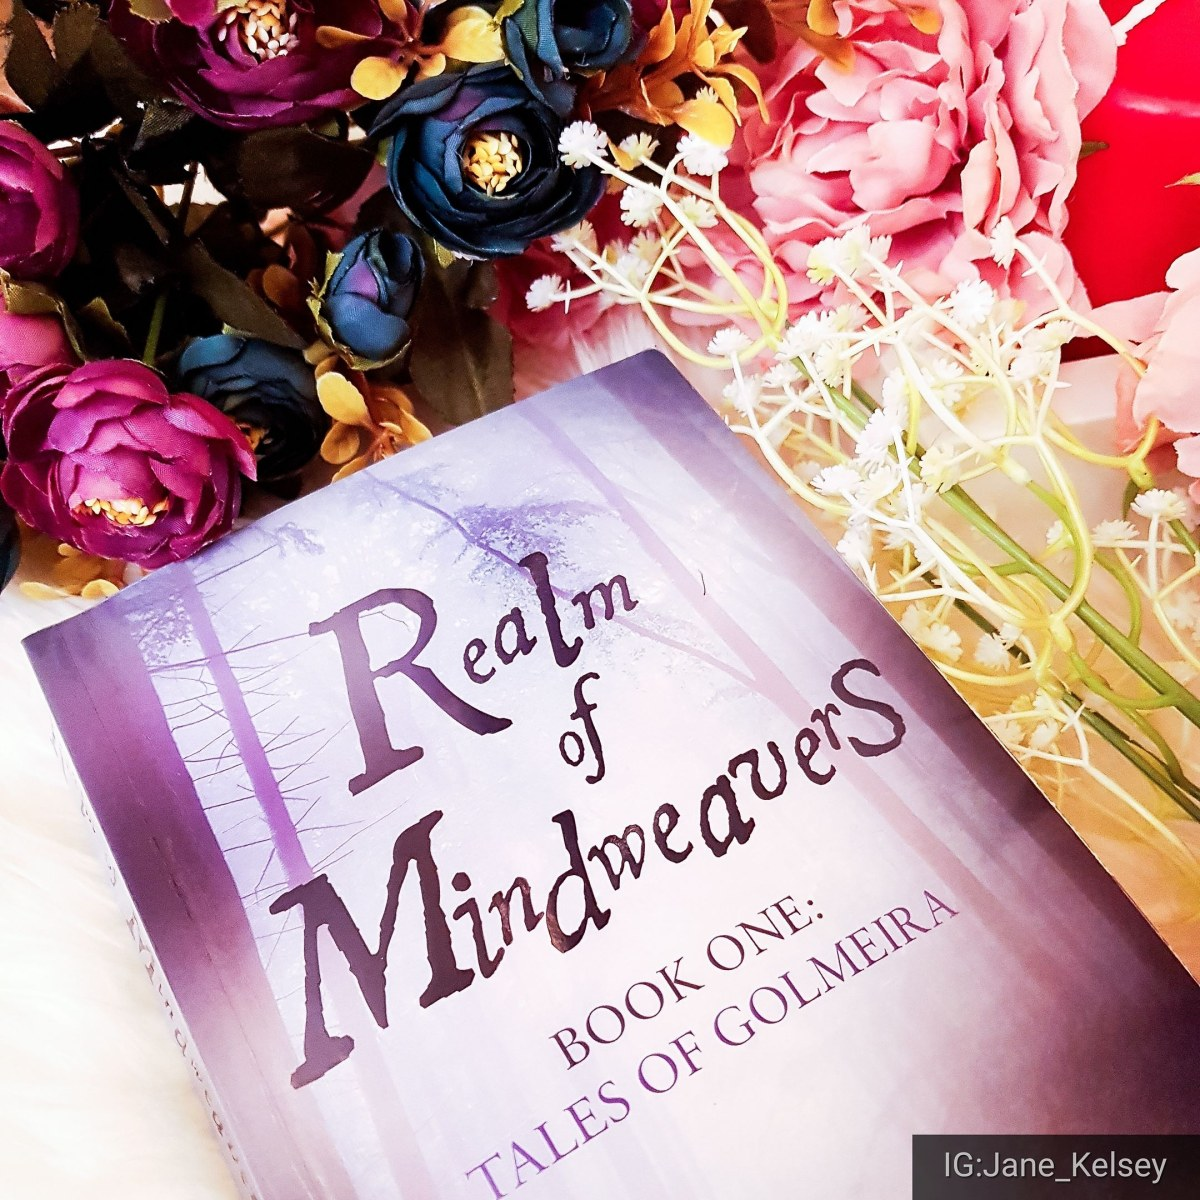 BOOK REVIEW: Realm of Mindweavers- Tales of Golmeira by MarianneRatcliffe